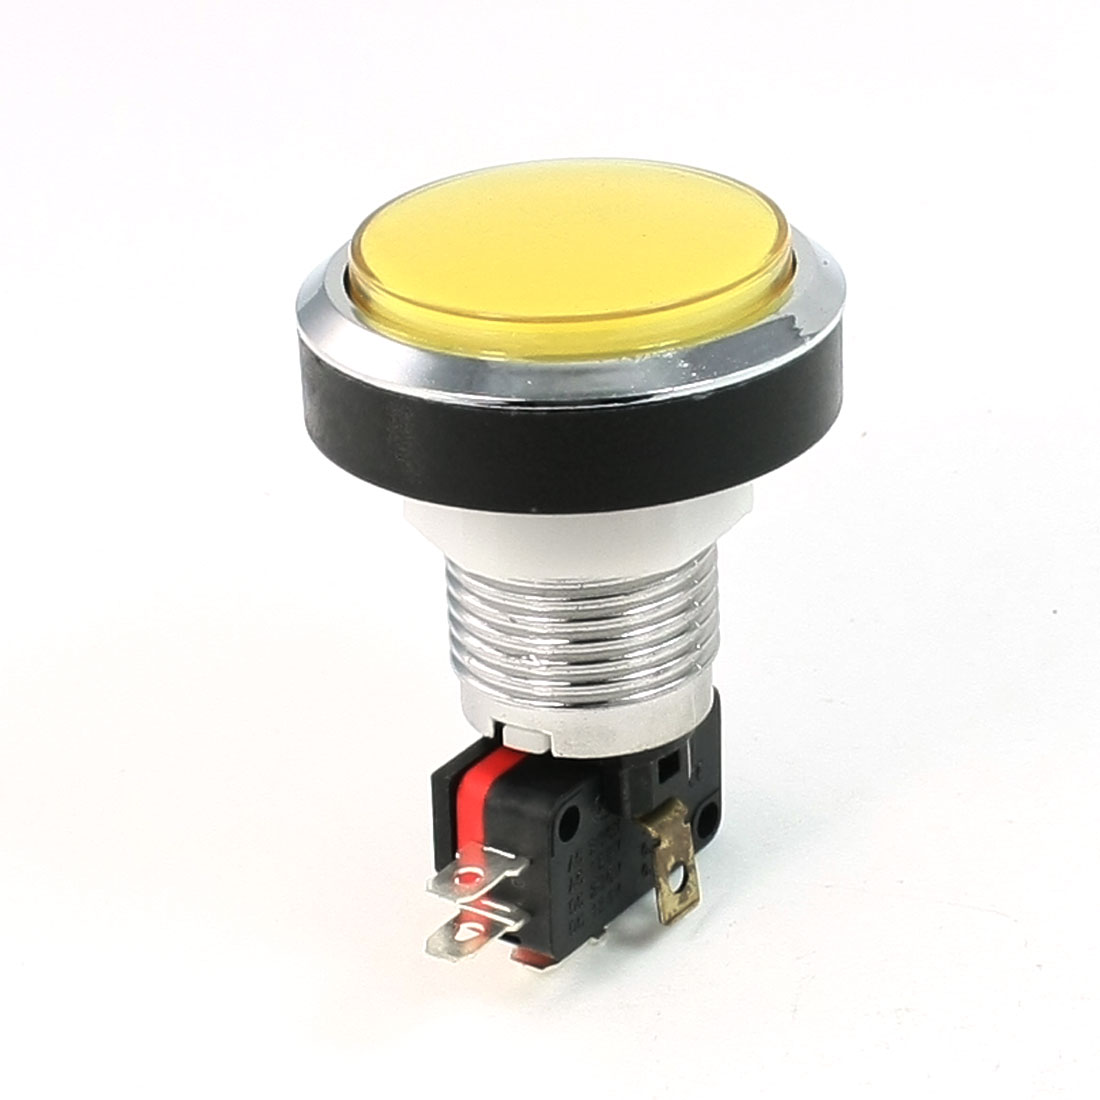 AC 125V/250V 15A Metal Shell 45mm Yellow Momentary Push Button Switch